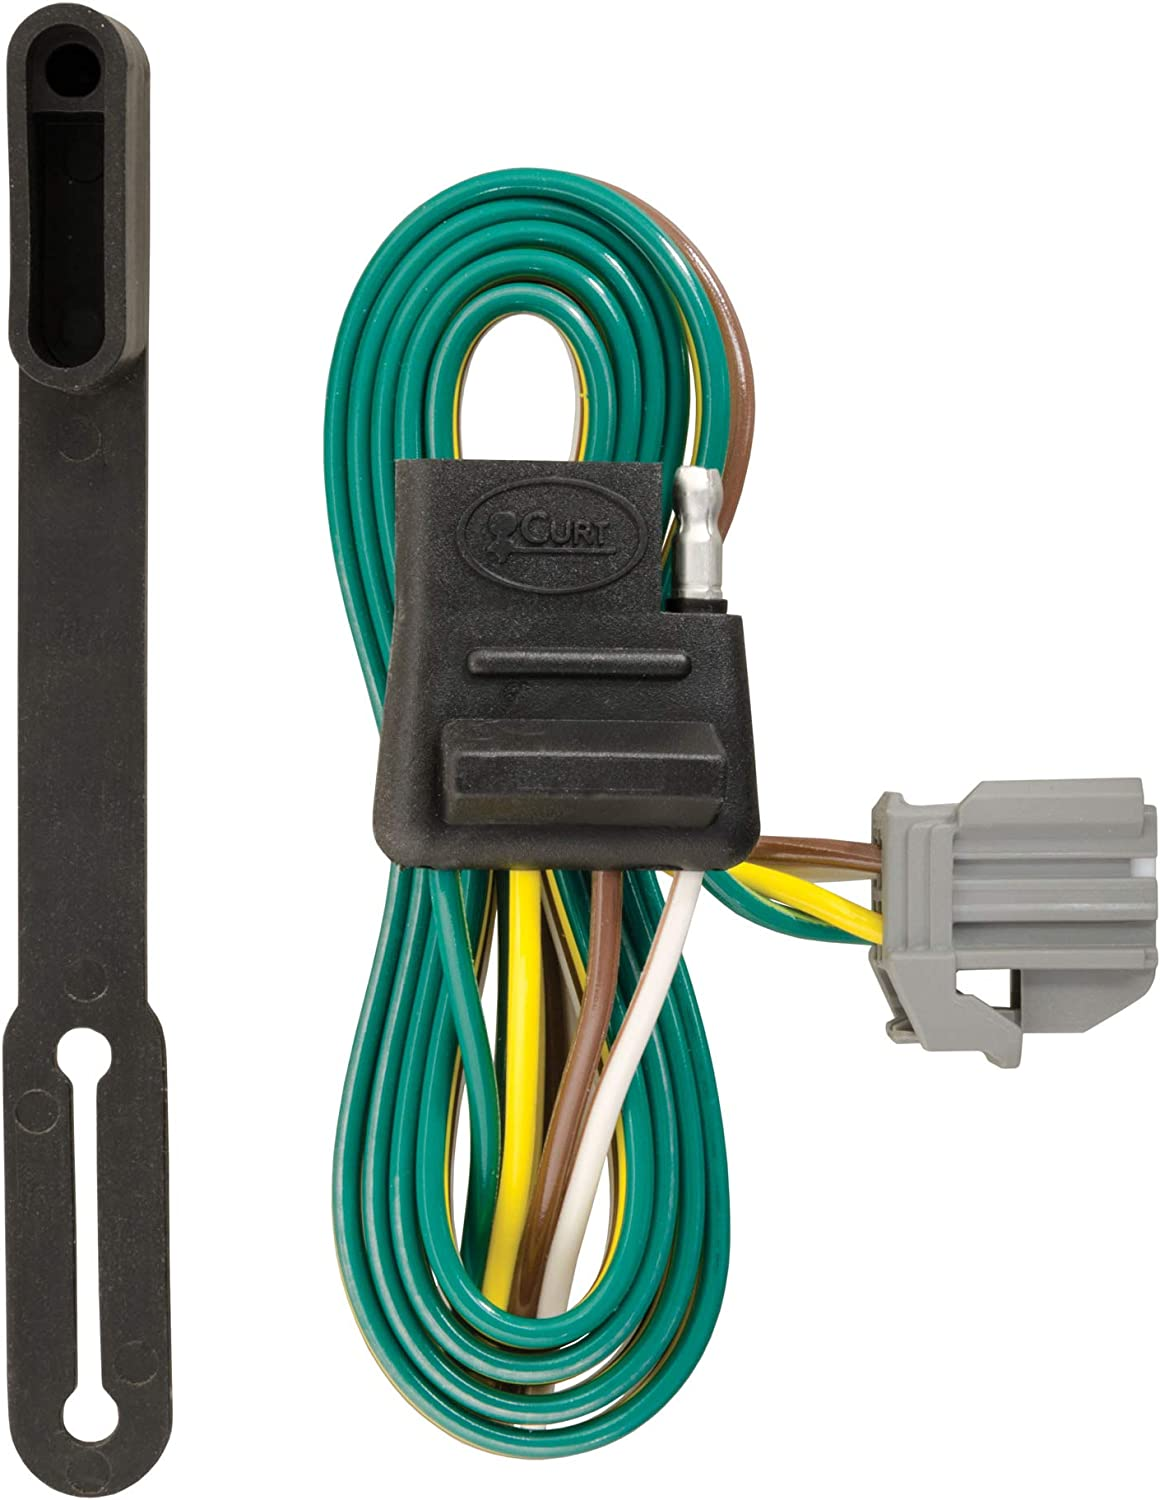 Chevrolet Trailer Wiring from images-na.ssl-images-amazon.com